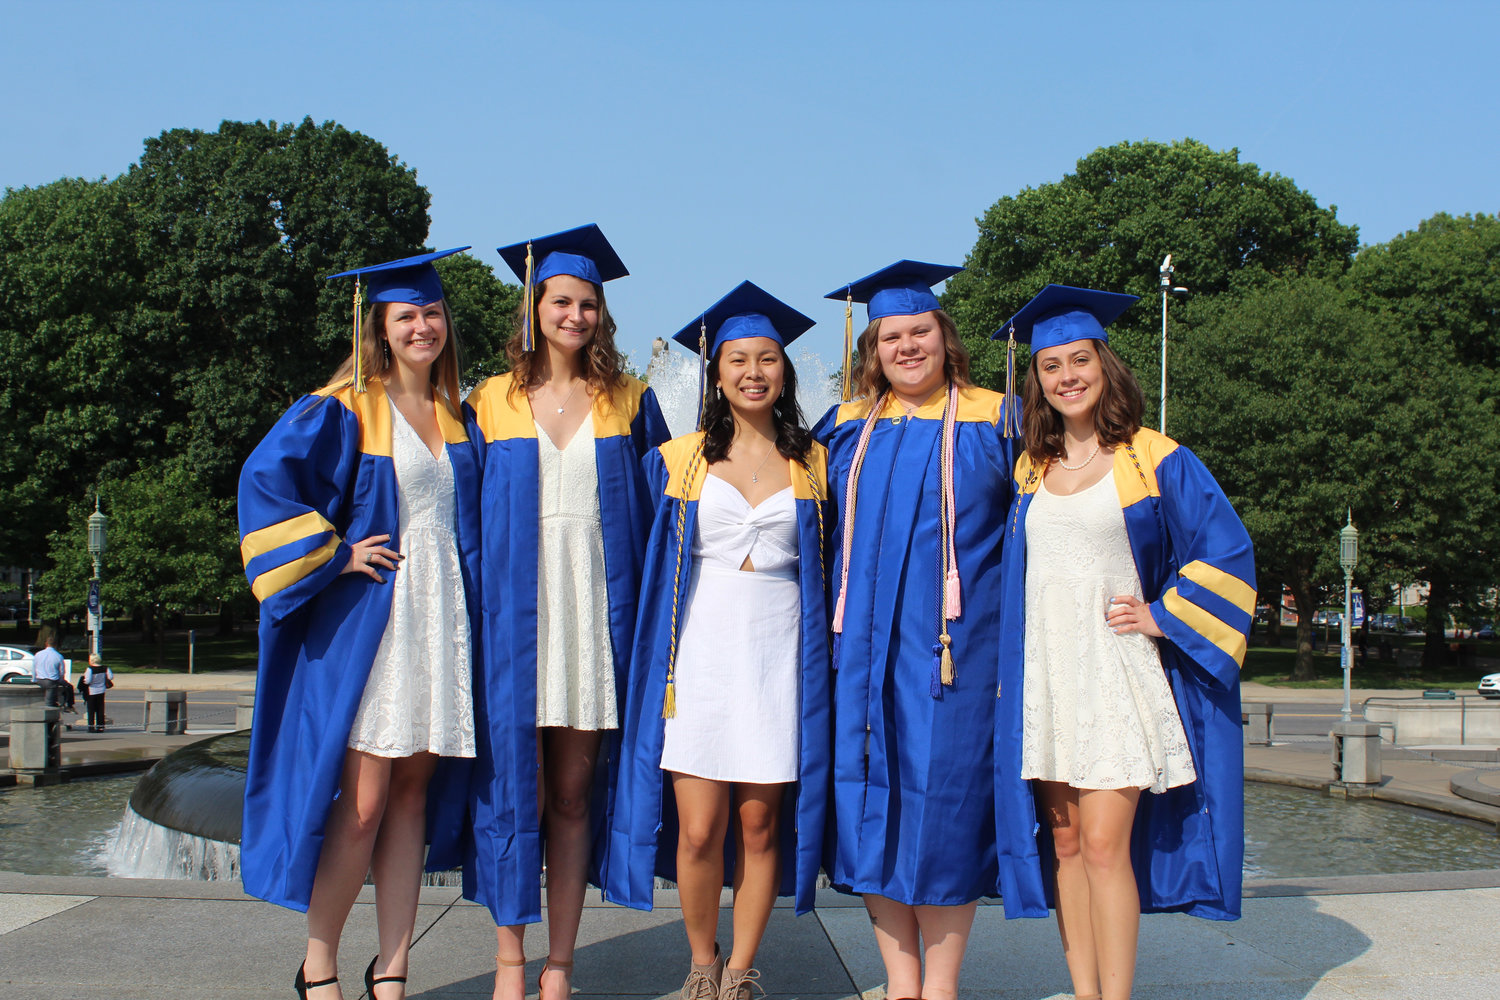 Alexandria Fish, Sophia York, Kaitlyn Knaub, Alexis Fischer, and Adriene Funck pose for photos before MAHS graduation on June 4.